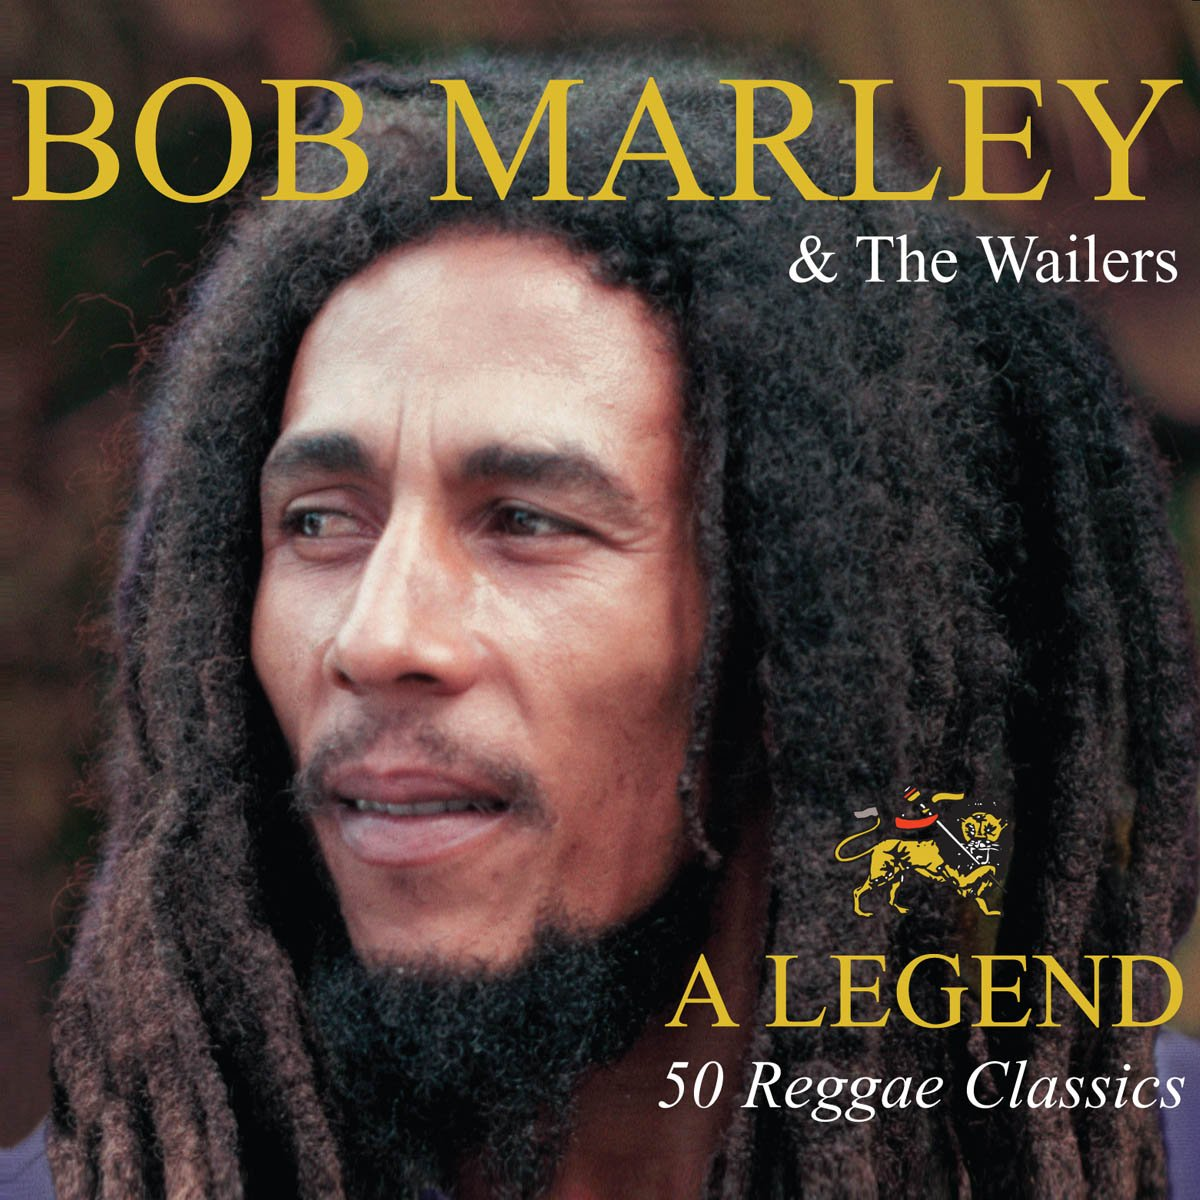 Bob marley legend 50 reggae classics amazon music thecheapjerseys Gallery